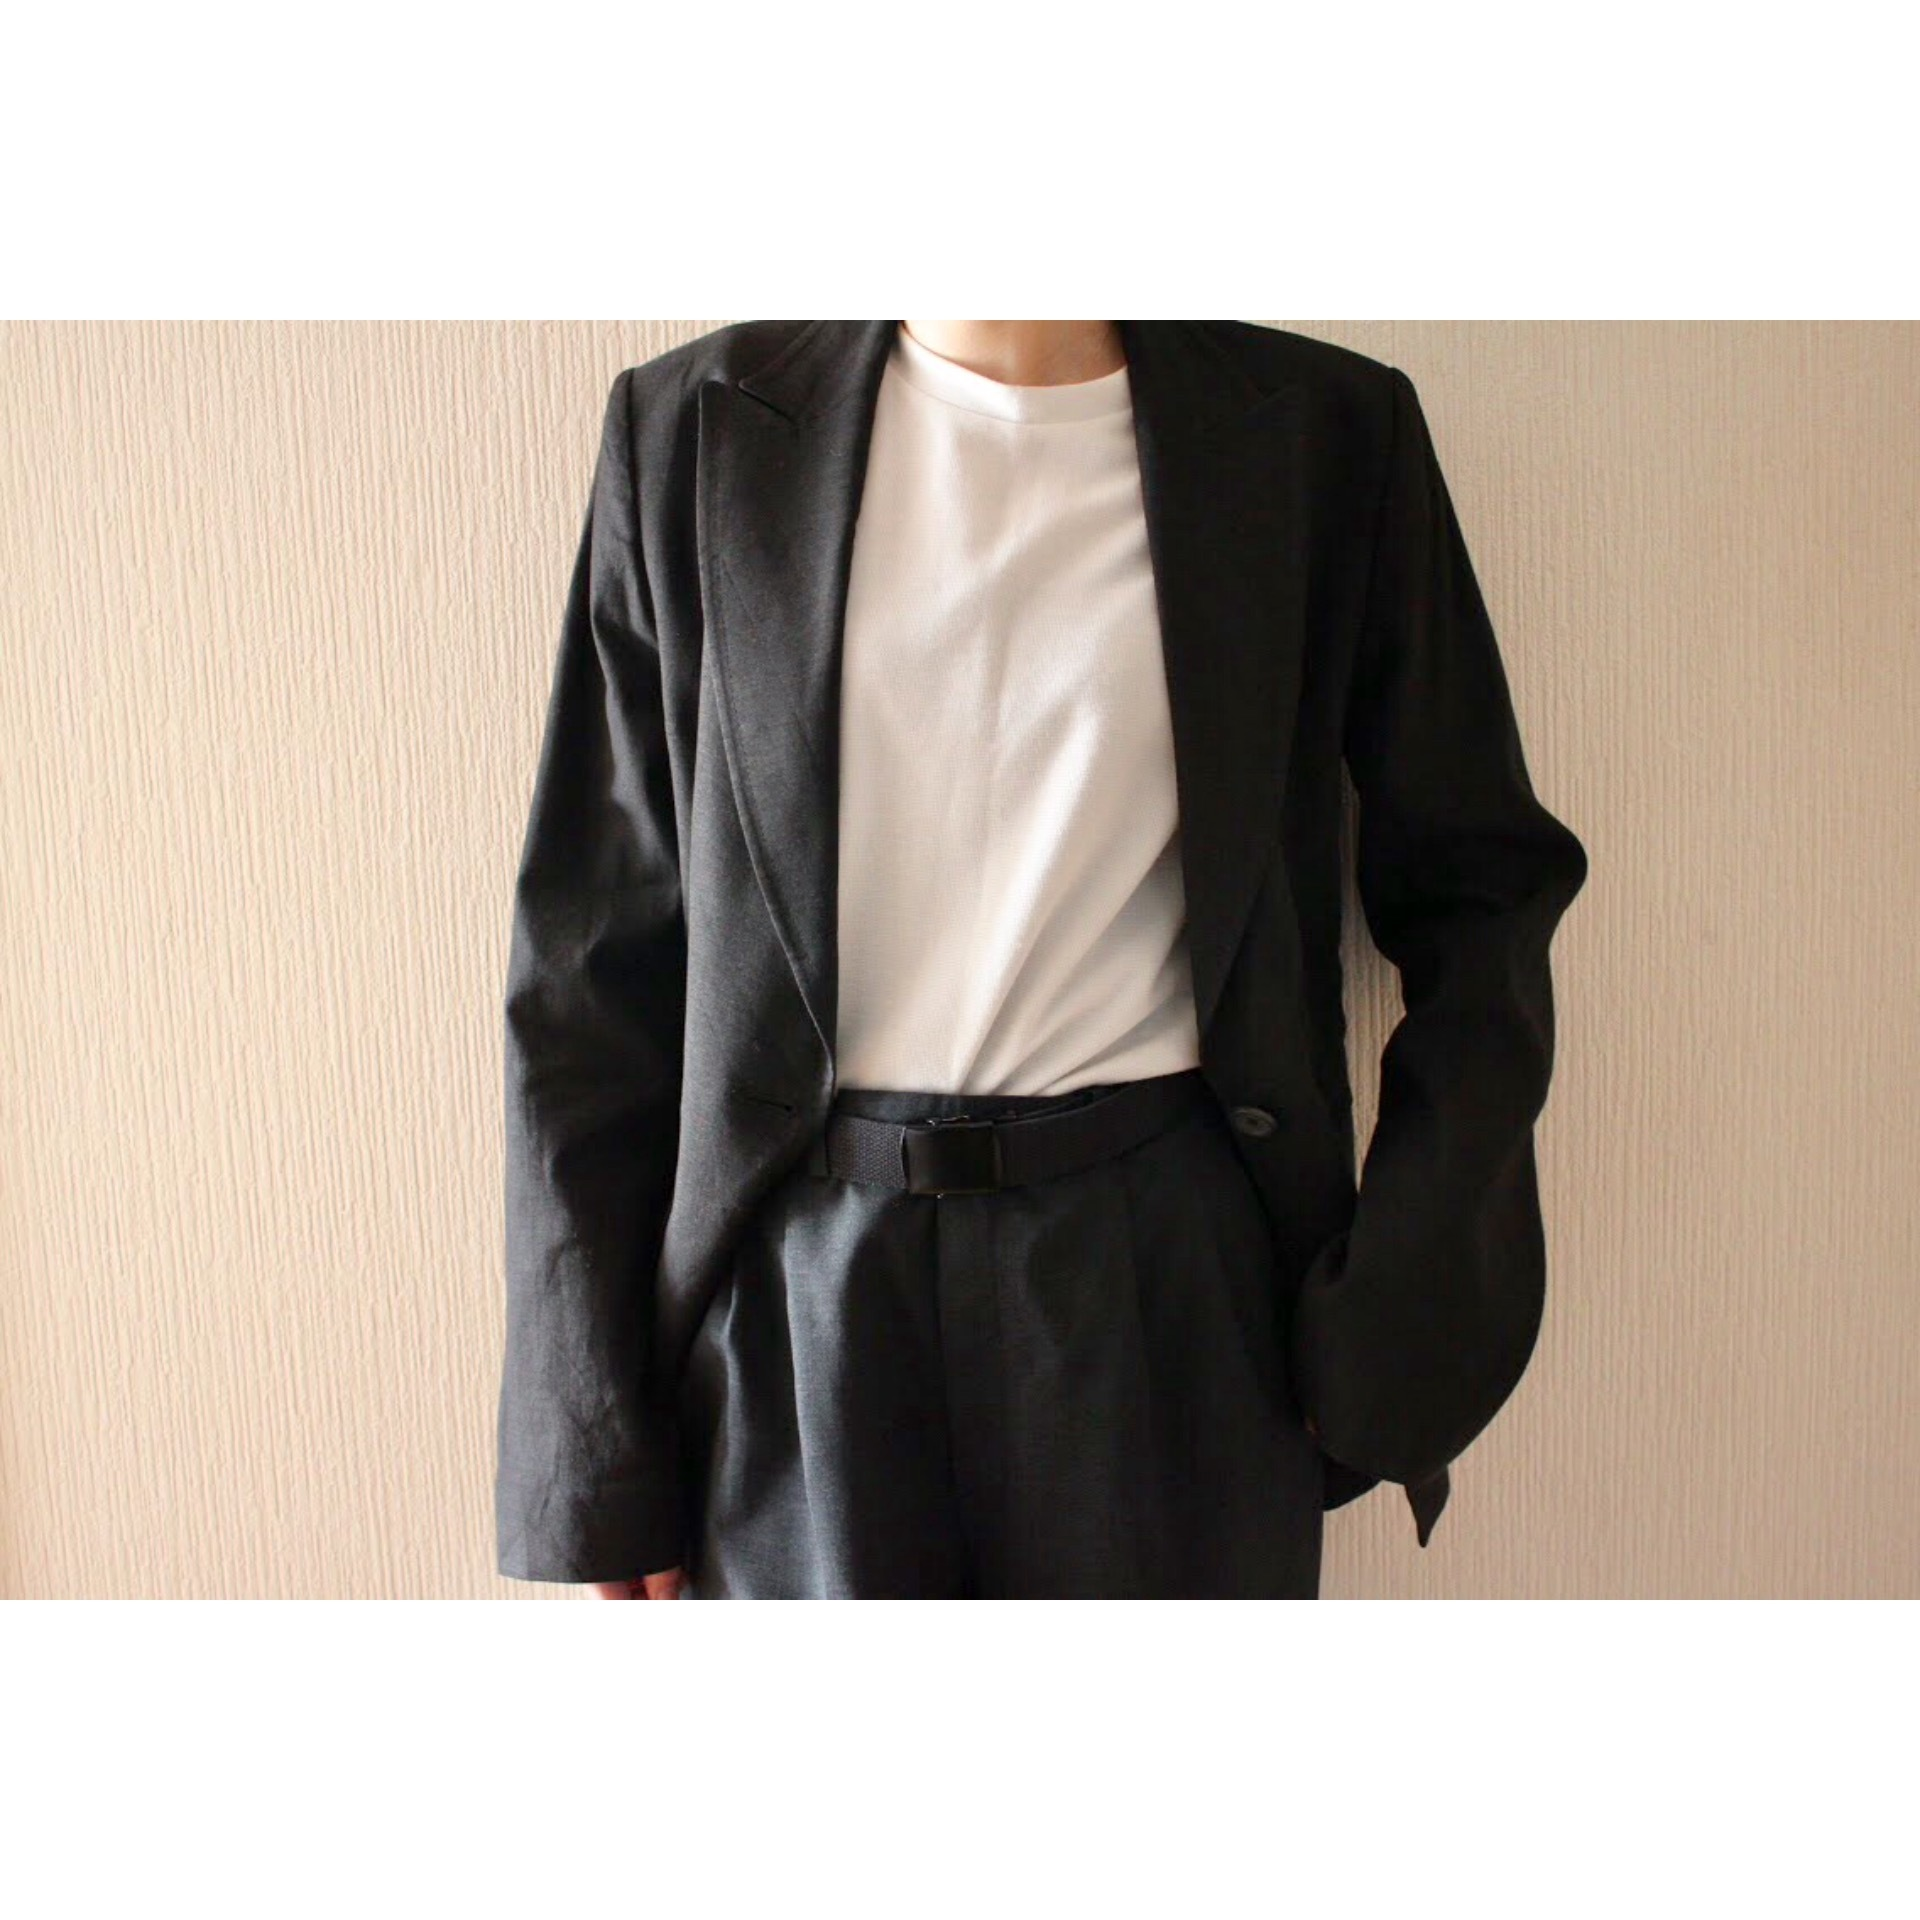 Vintage linen tailored jacket